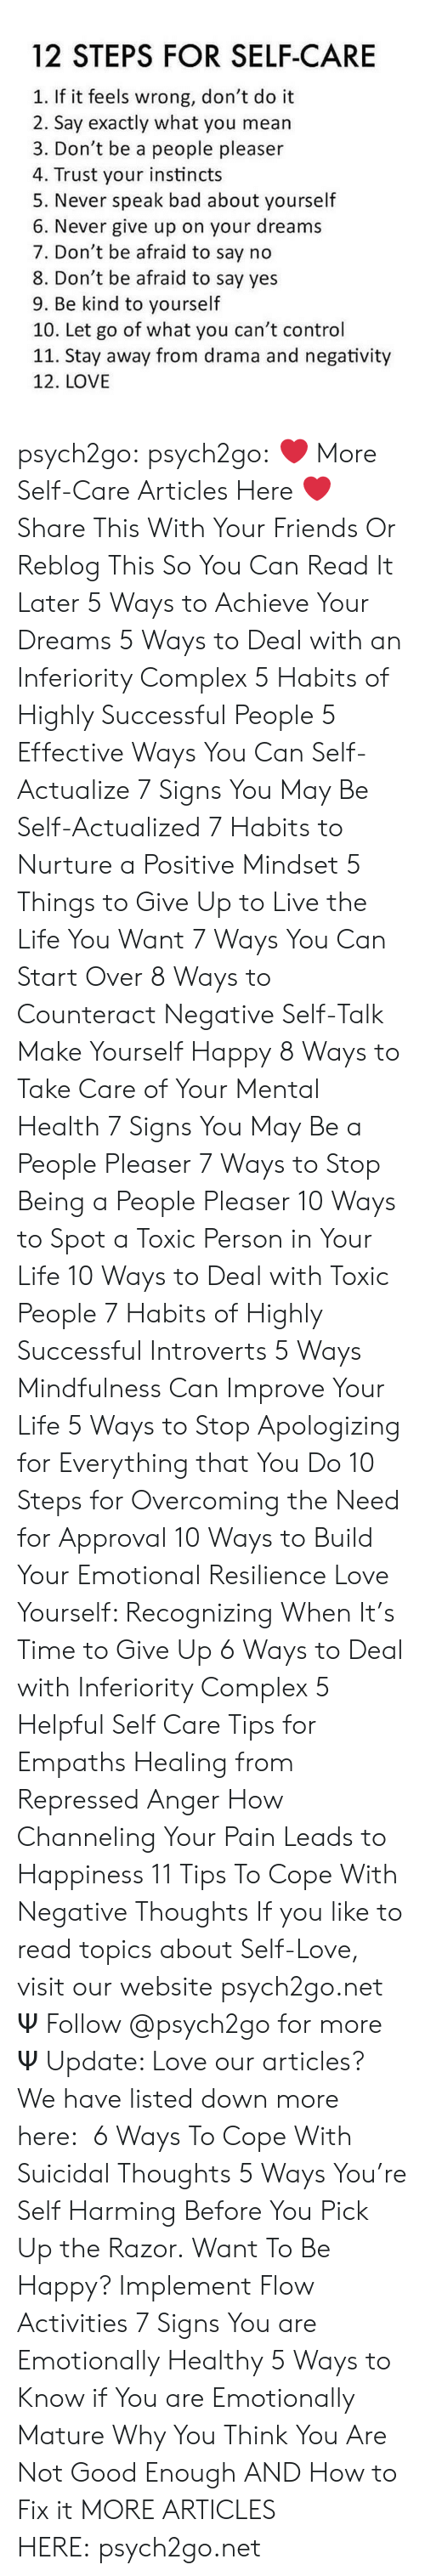 Bad, Complex, and Friends: 12 STEPS FOR SELF-CARE  1. If it feels wrong, don't do it  2. Say exactly what you mean  3. Don't be a people pleaser  4. Trust your instincts  5. Never speak bad about yourself  6. Never give up on your dreams  7. Don't be afraid to say no  8. Don't be afraid to say yes  9. Be kind to yourself  10. Let go of what you can't control  11. Stay away from drama and negativity  12. LOVE psych2go: psych2go:  ❤ More Self-Care Articles Here ❤ Share This With Your Friends Or Reblog This So You Can Read It Later 5 Ways to Achieve Your Dreams 5 Ways to Deal with an Inferiority Complex 5 Habits of Highly Successful People 5 Effective Ways You Can Self-Actualize 7 Signs You May Be Self-Actualized 7 Habits to Nurture a Positive Mindset 5 Things to Give Up to Live the Life You Want 7 Ways You Can Start Over 8 Ways to Counteract Negative Self-Talk Make Yourself Happy 8 Ways to Take Care of Your Mental Health 7 Signs You May Be a People Pleaser 7 Ways to Stop Being a People Pleaser 10 Ways to Spot a Toxic Person in Your Life 10 Ways to Deal with Toxic People 7 Habits of Highly Successful Introverts 5 Ways Mindfulness Can Improve Your Life 5 Ways to Stop Apologizing for Everything that You Do 10 Steps for Overcoming the Need for Approval 10 Ways to Build Your Emotional Resilience Love Yourself: Recognizing When It's Time to Give Up 6 Ways to Deal with Inferiority Complex 5 Helpful Self Care Tips for Empaths Healing from Repressed Anger How Channeling Your Pain Leads to Happiness 11 Tips To Cope With Negative Thoughts If you like to read topics about Self-Love, visit our website psych2go.net Ψ Follow @psych2go​ for more Ψ  Update: Love our articles? We have listed down more here:  6 Ways To Cope With Suicidal Thoughts 5 Ways You're Self Harming Before You Pick Up the Razor. Want To Be Happy? Implement Flow Activities 7 Signs You are Emotionally Healthy 5 Ways to Know if You are Emotionally Mature Why You Think You Are Not Good Enough AND How to Fix it MORE ARTICLES HERE: psych2go.net